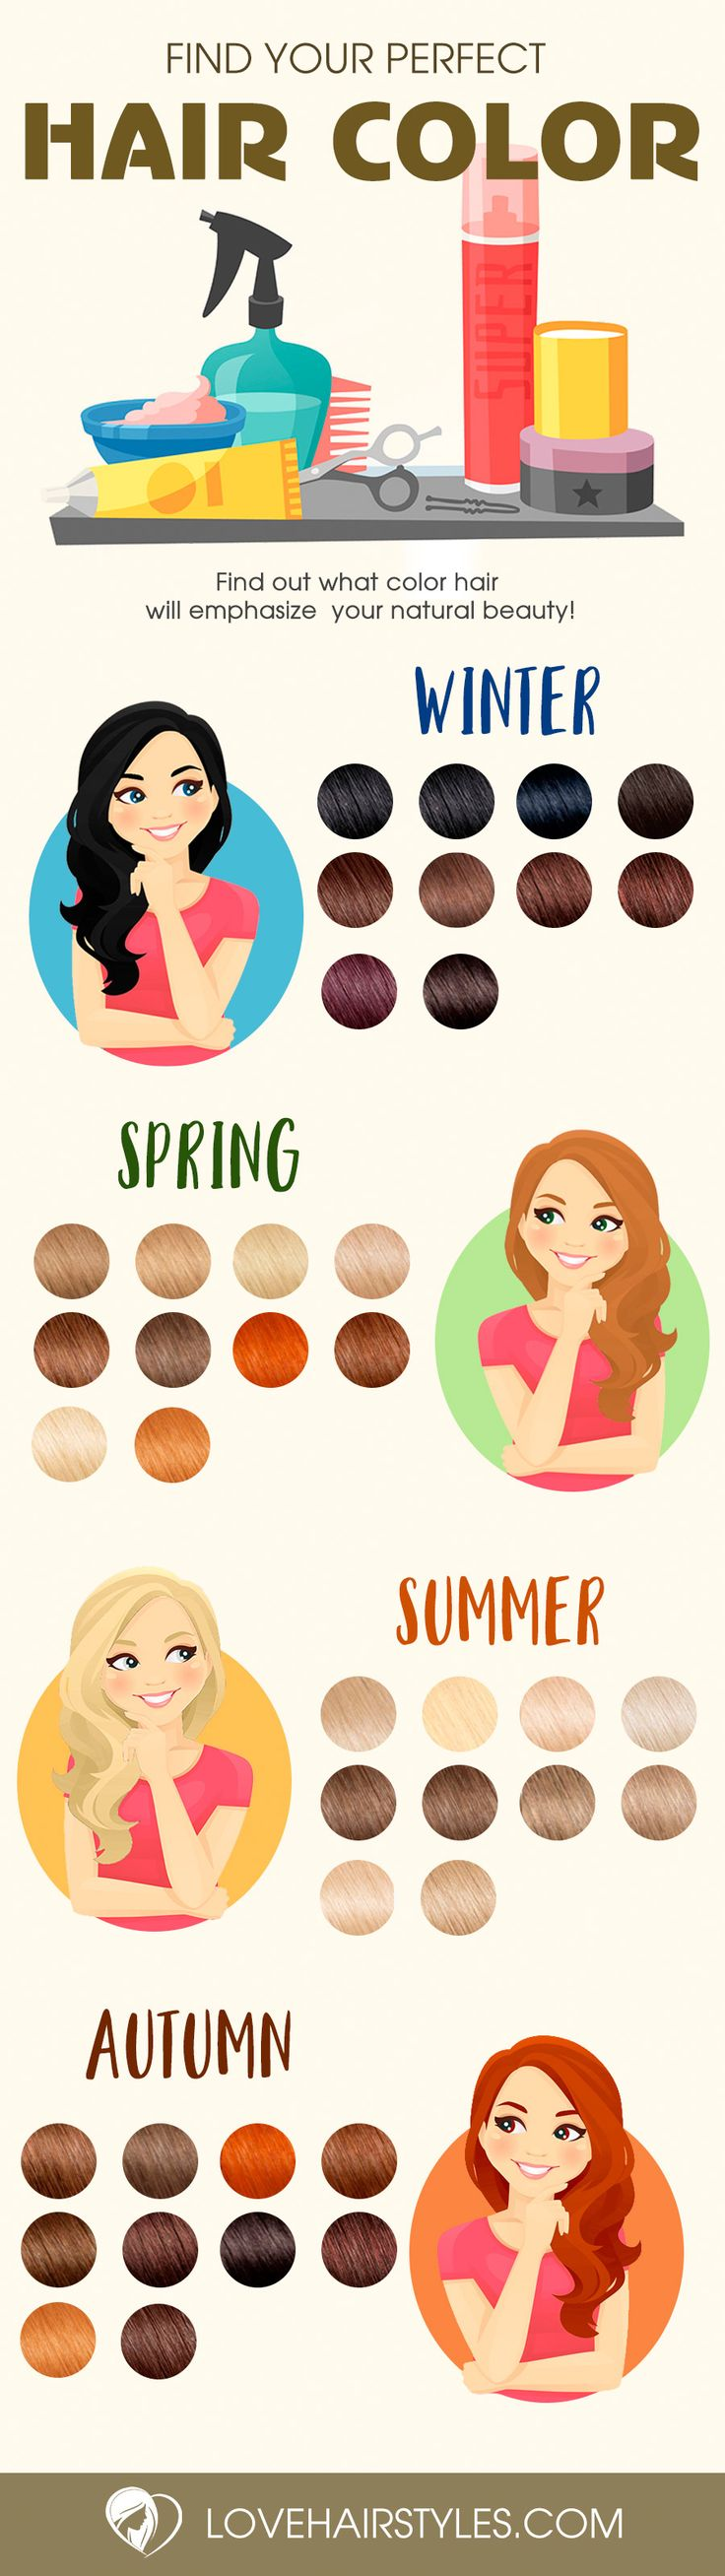 Trendy Hair Colors for Every Season 2017